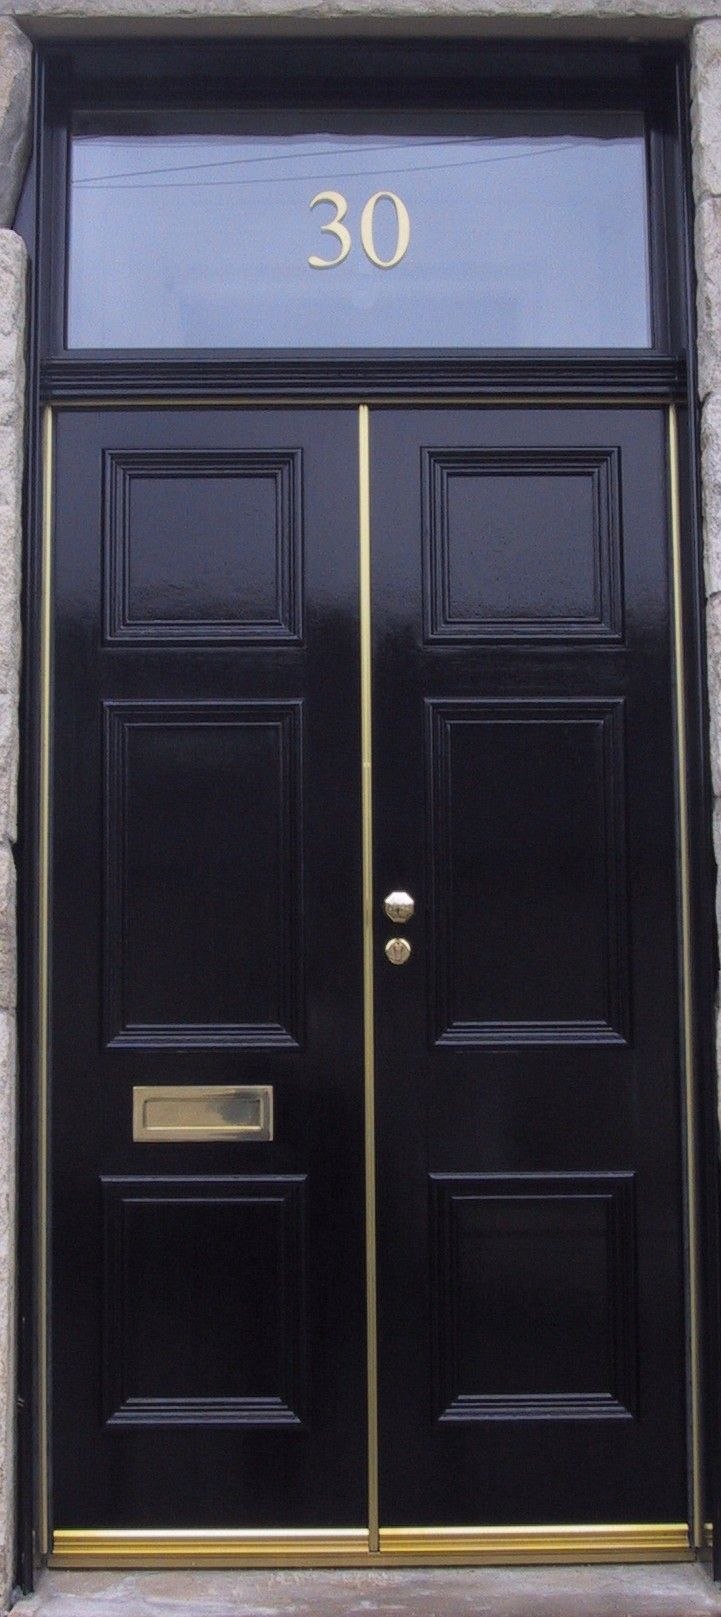 10 best images about Double front doors on Pinterest Foyers